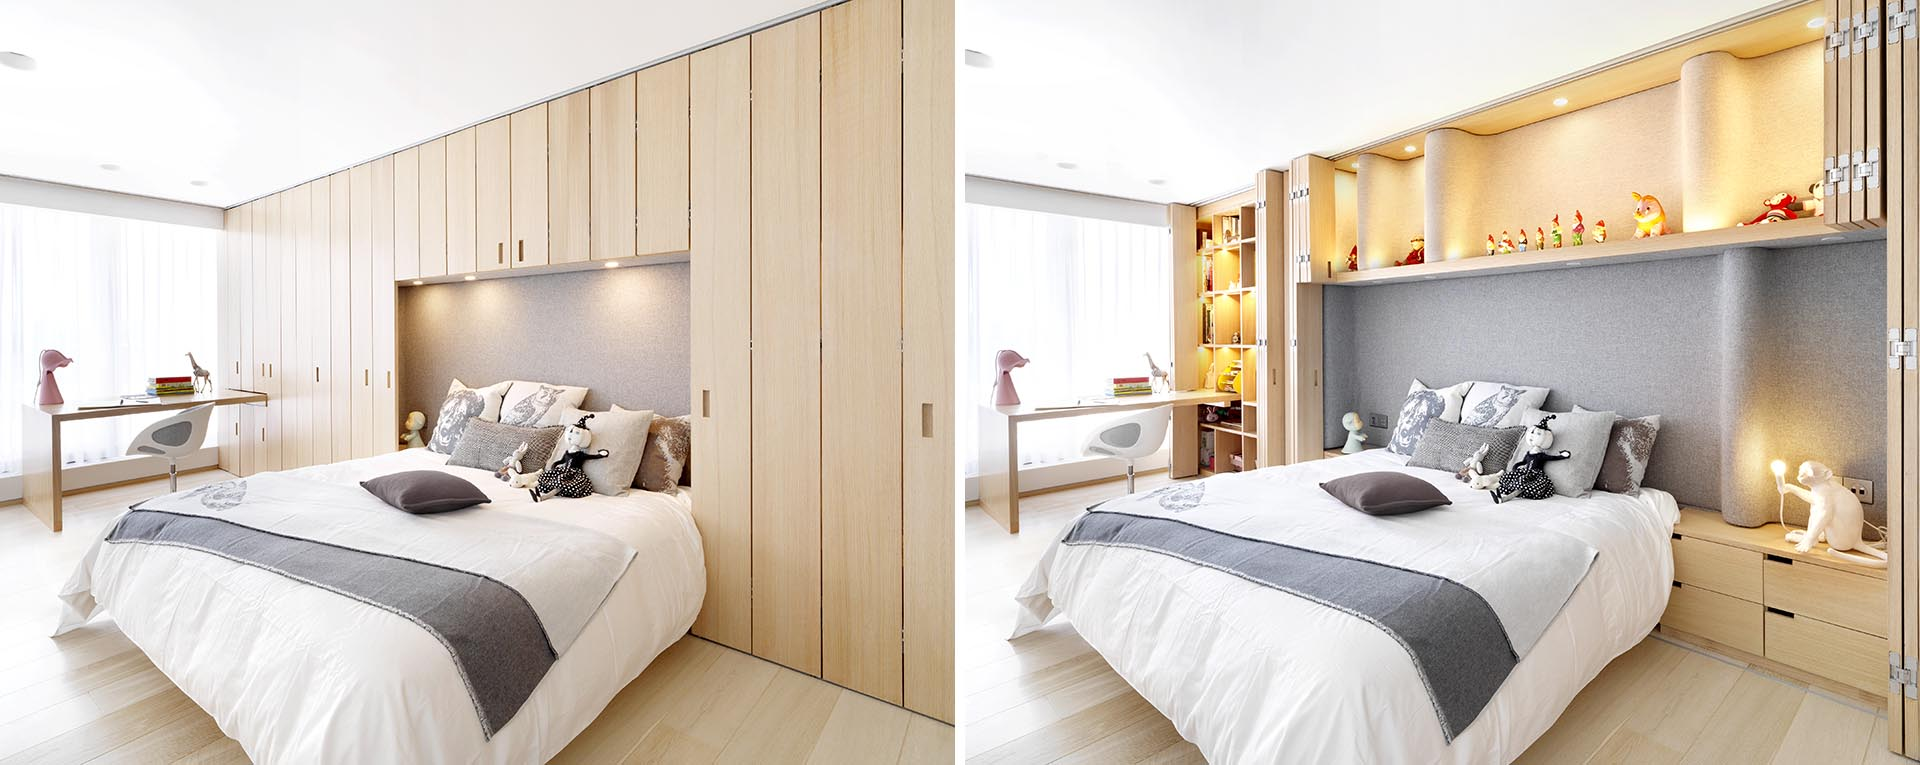 Folding Wood Doors Hide Plenty Of Built-In Storage In This Apartment